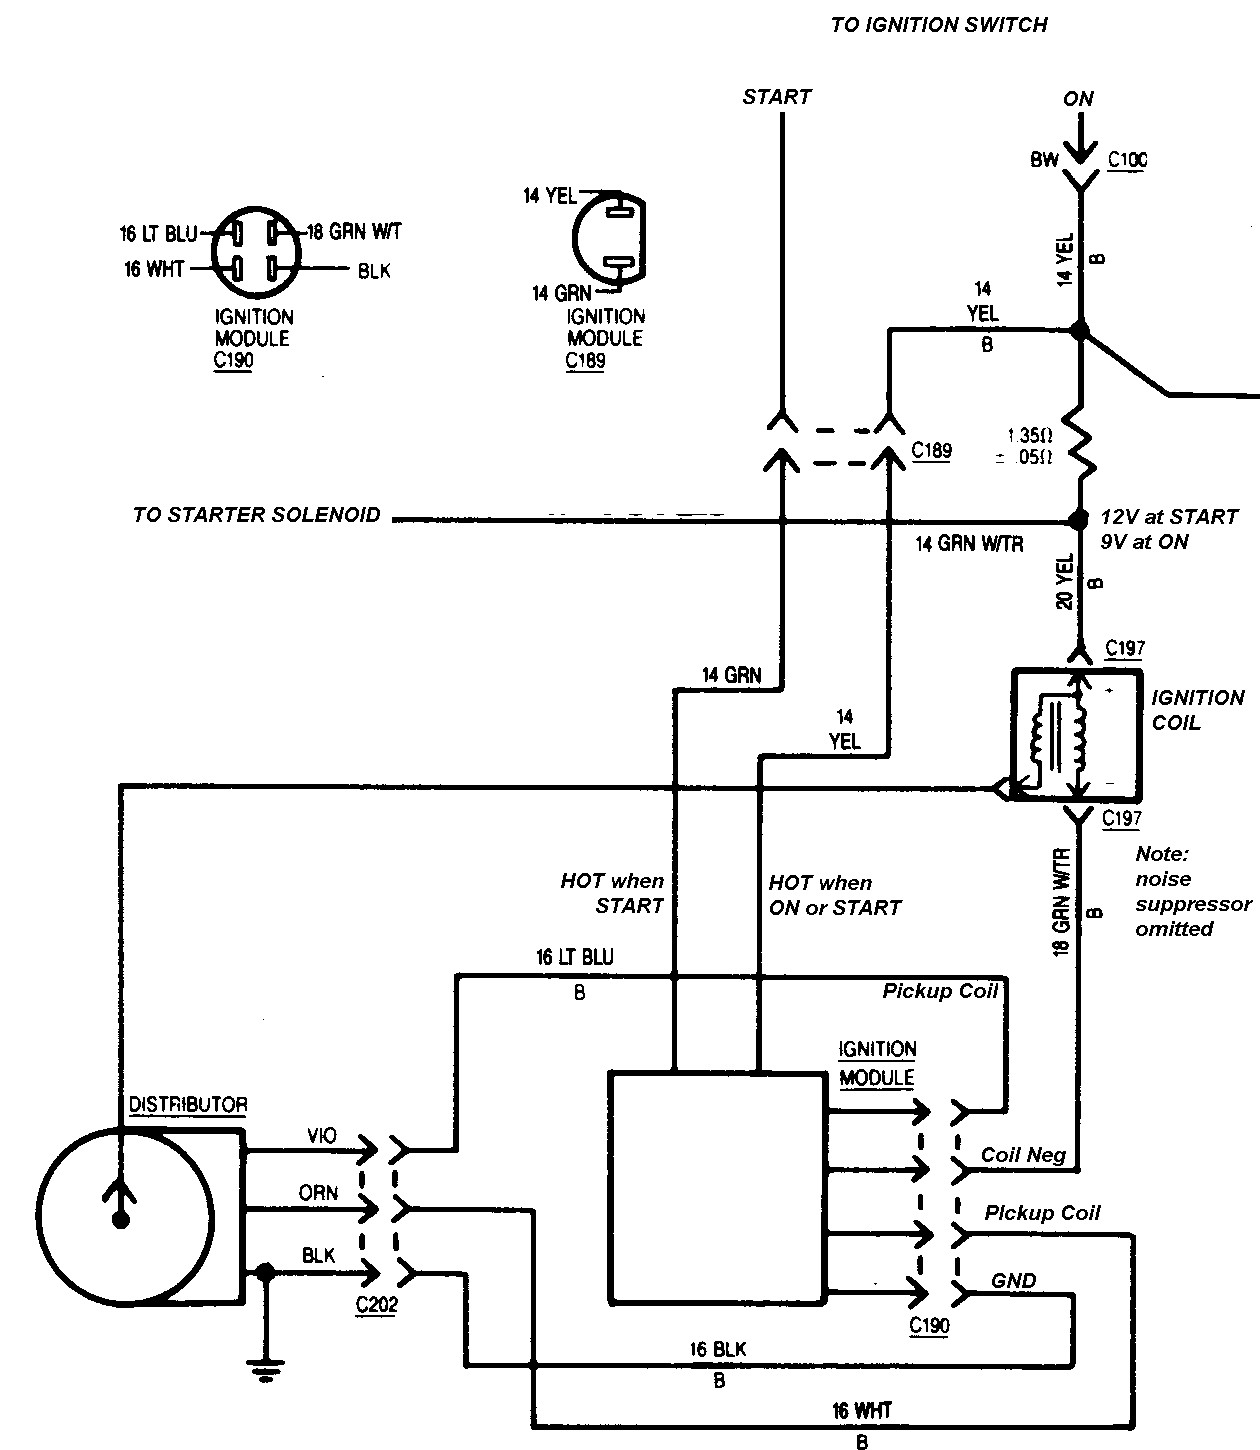 gm tbi iac wiring diagram gm tbi swap wiring diagram